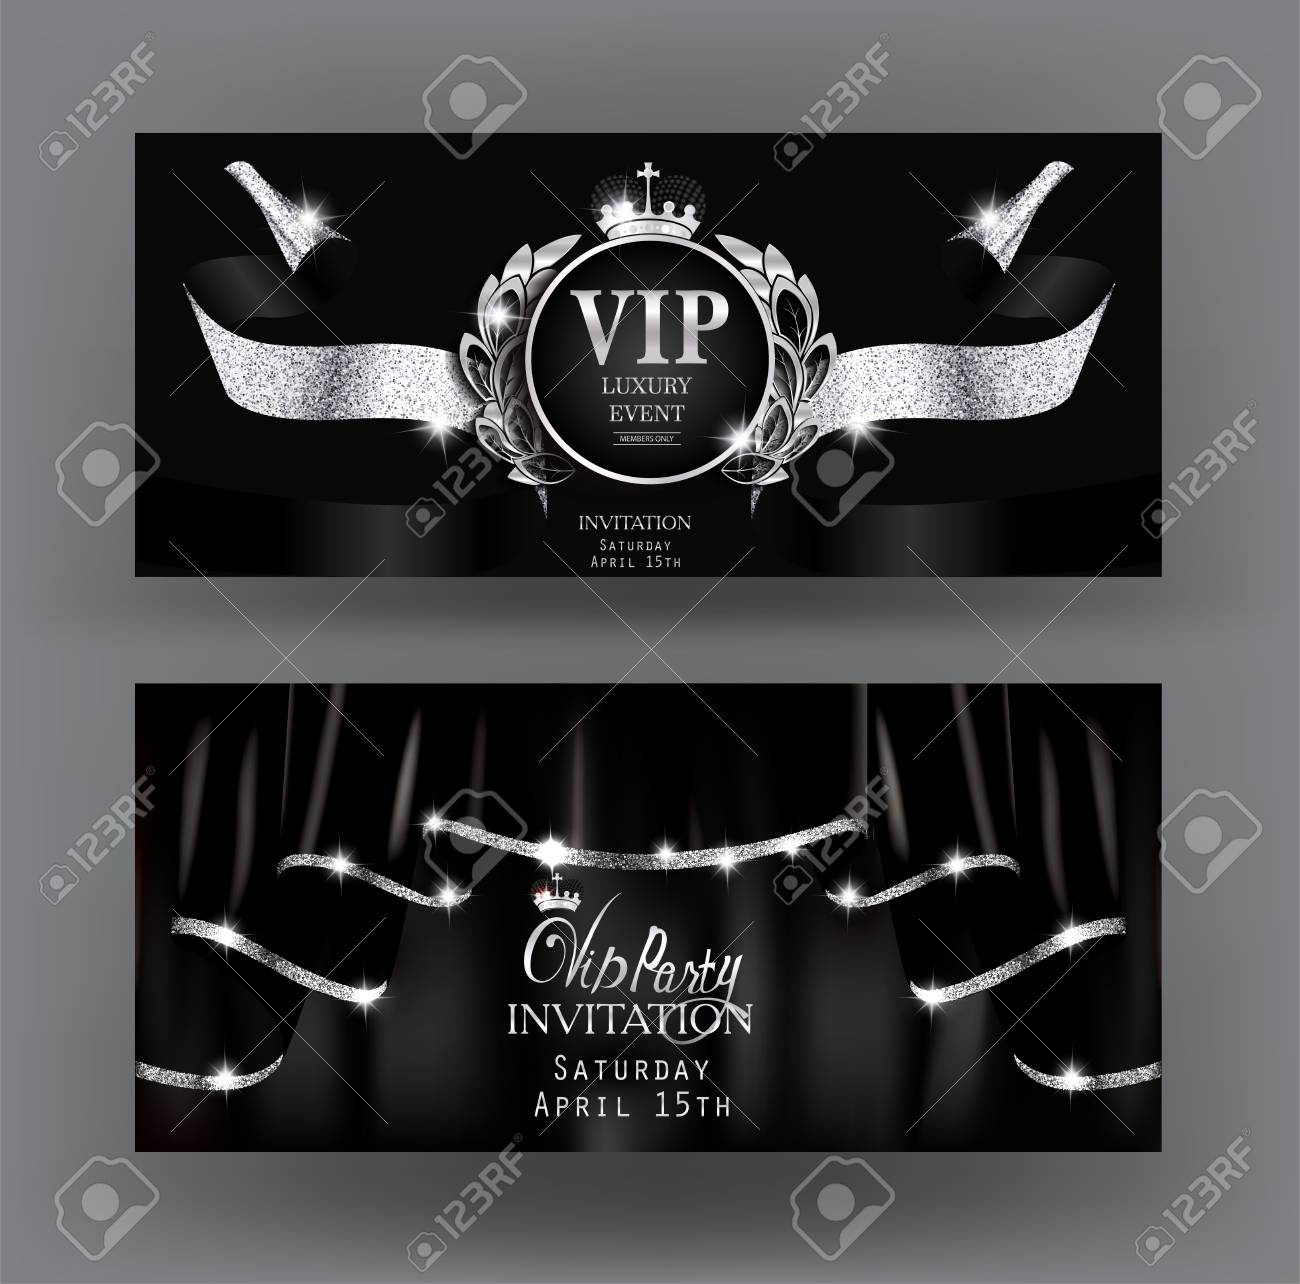 Sparkling Silver Banners Baby Toy Banners